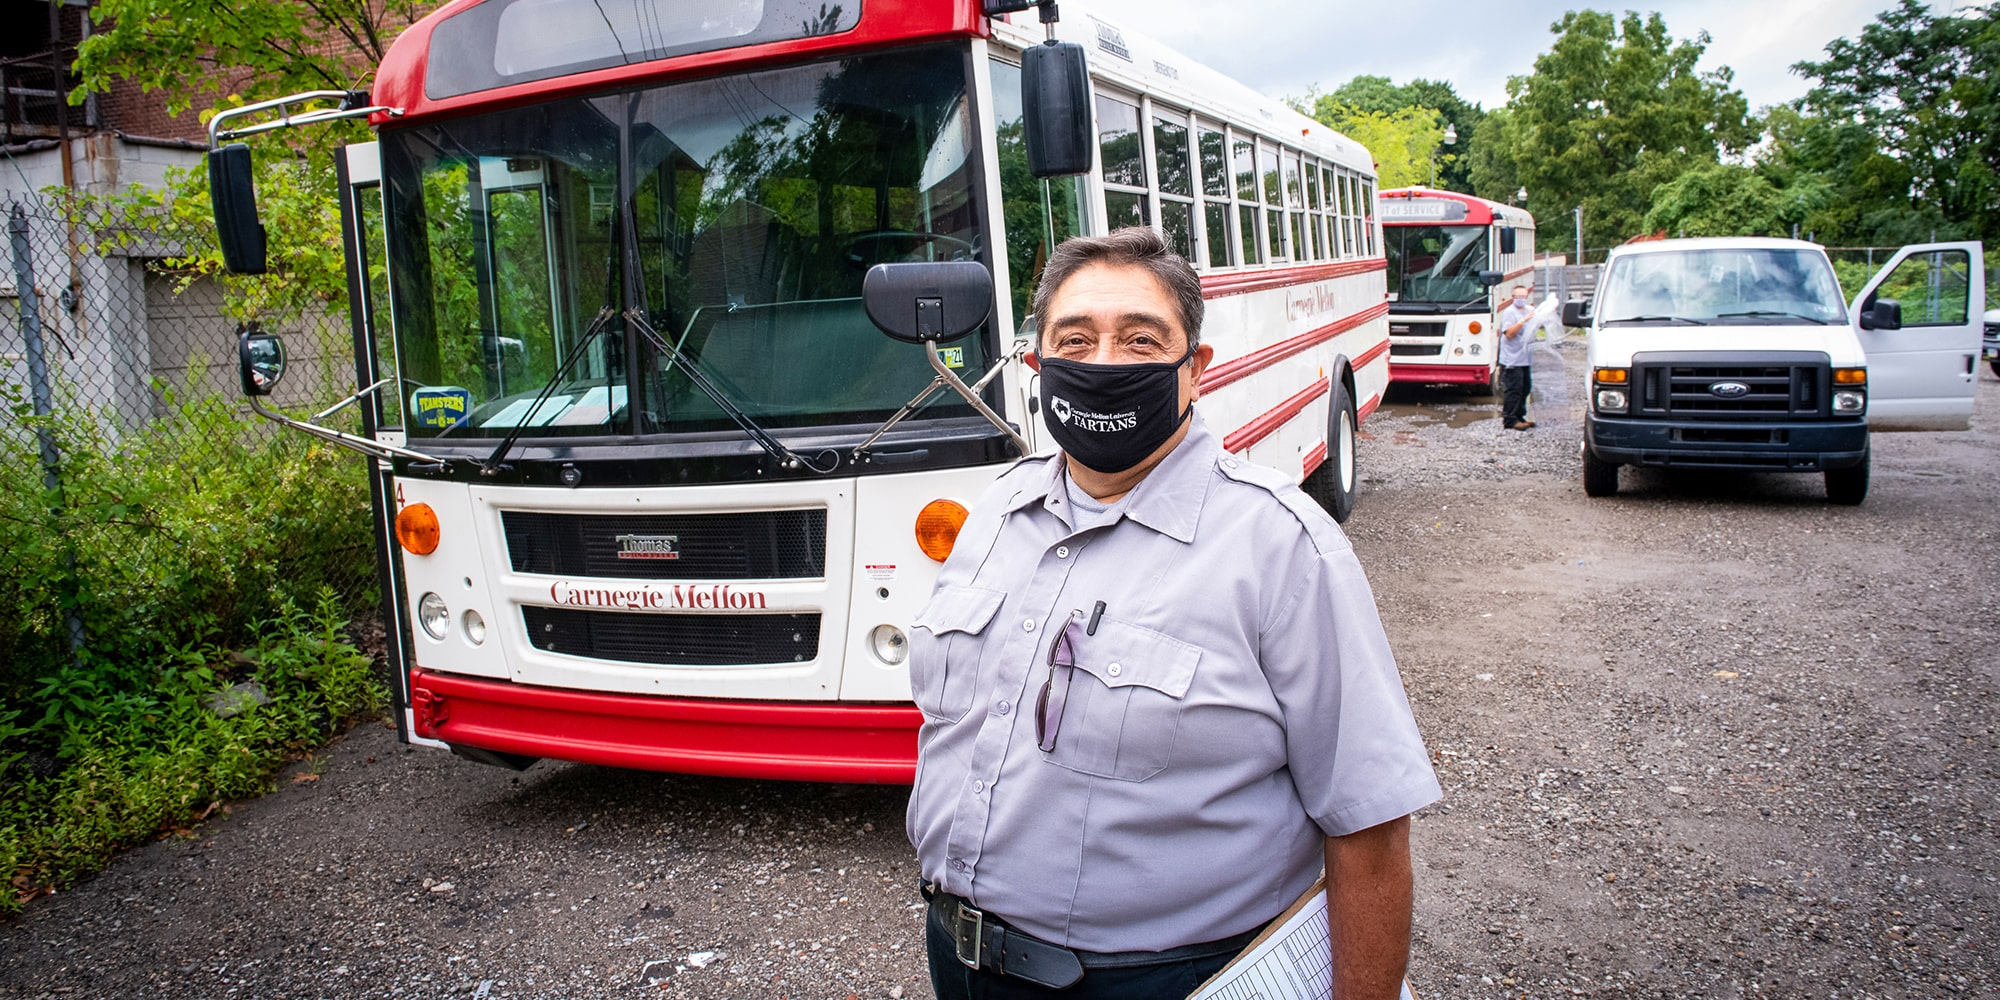 Shuttle driver in front of shuttle wearing a mask